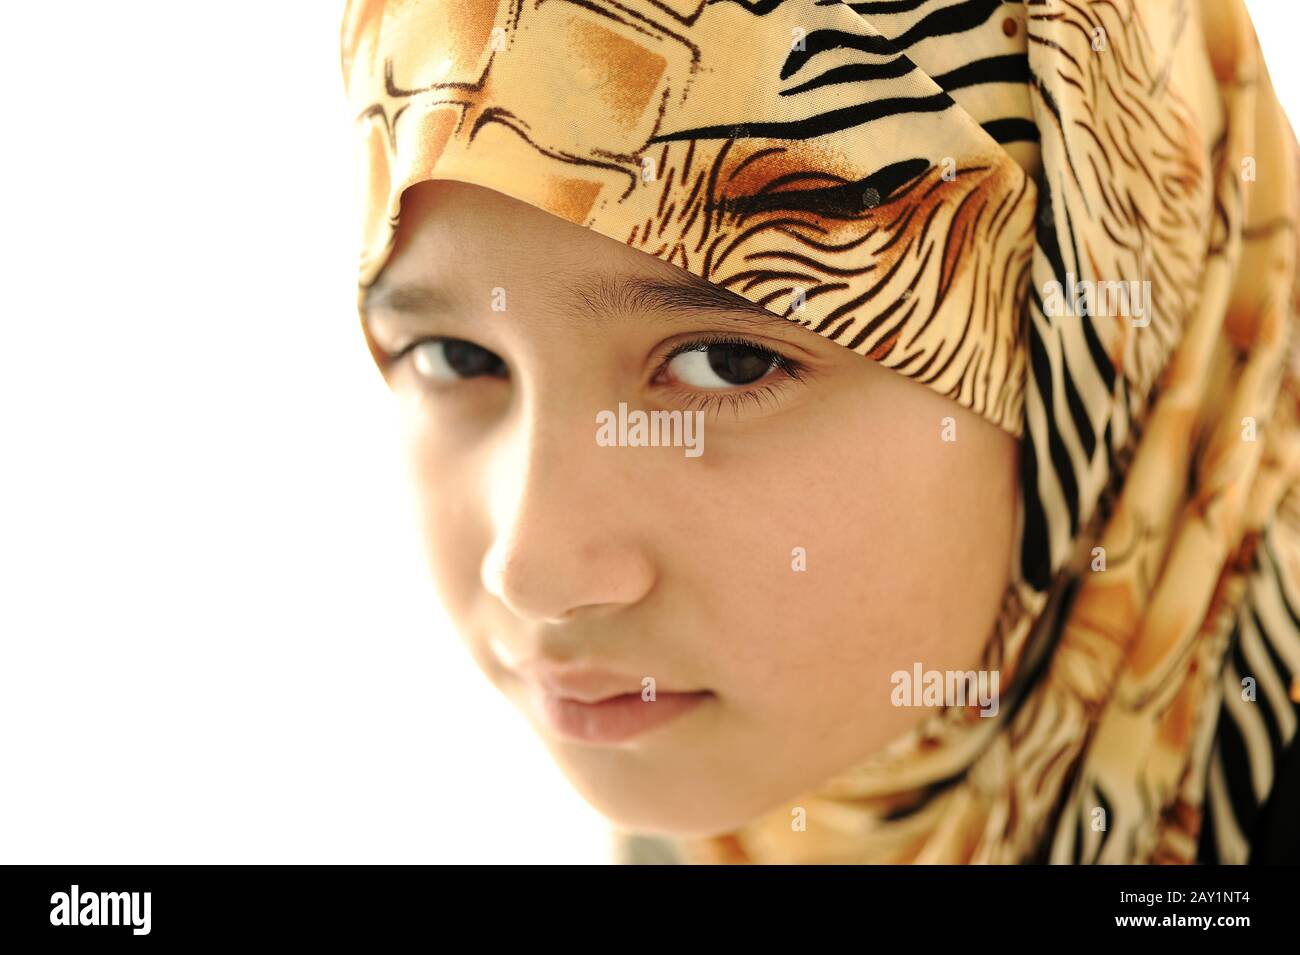 Muslim Girl Sad High Resolution Stock Photography And Images Alamy